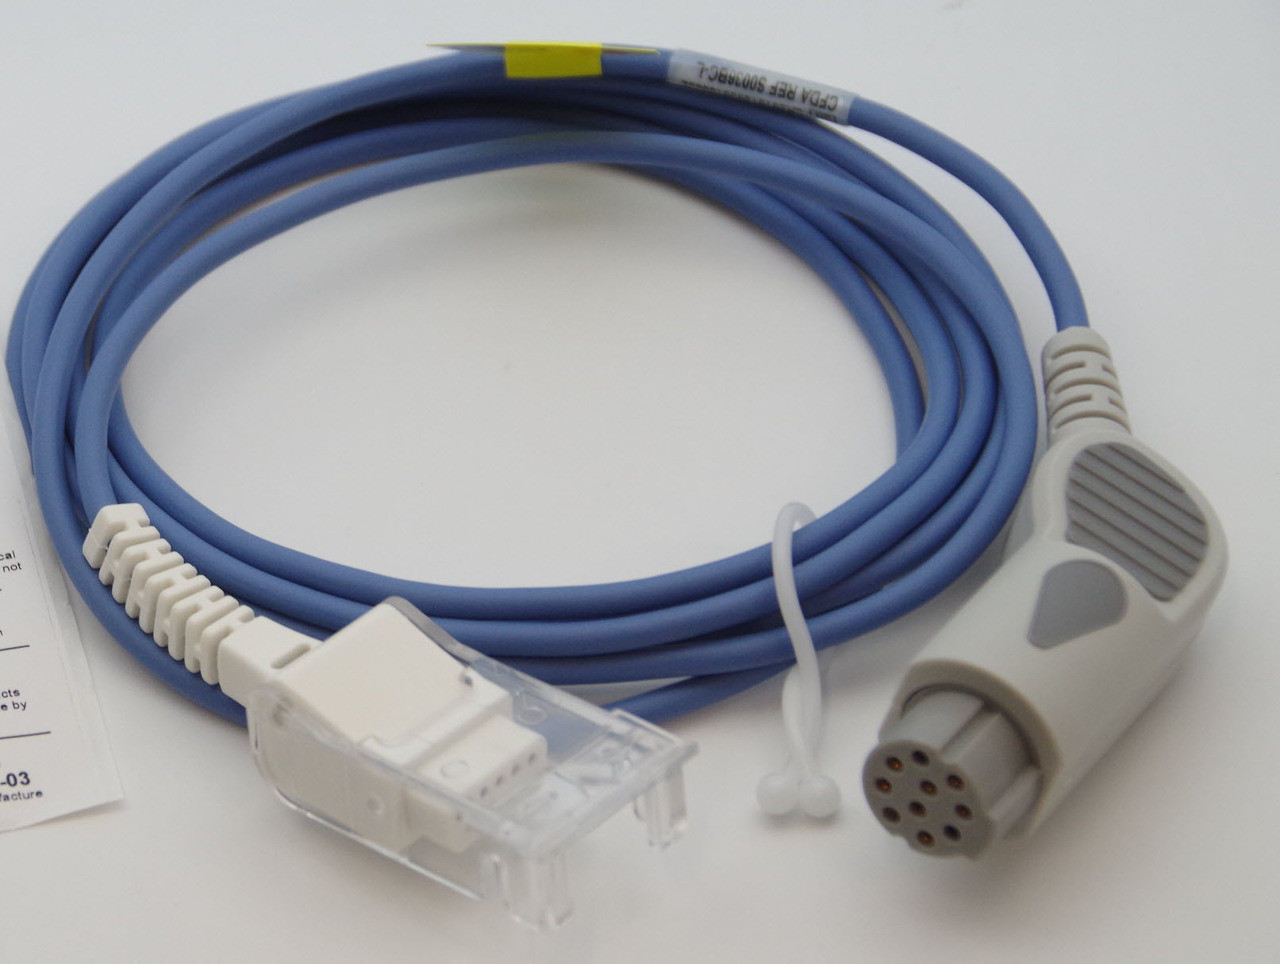 Spo2 cable compatible with DATEX-OHMEDA S5 USING DATEX-OHMEDA SENSOR